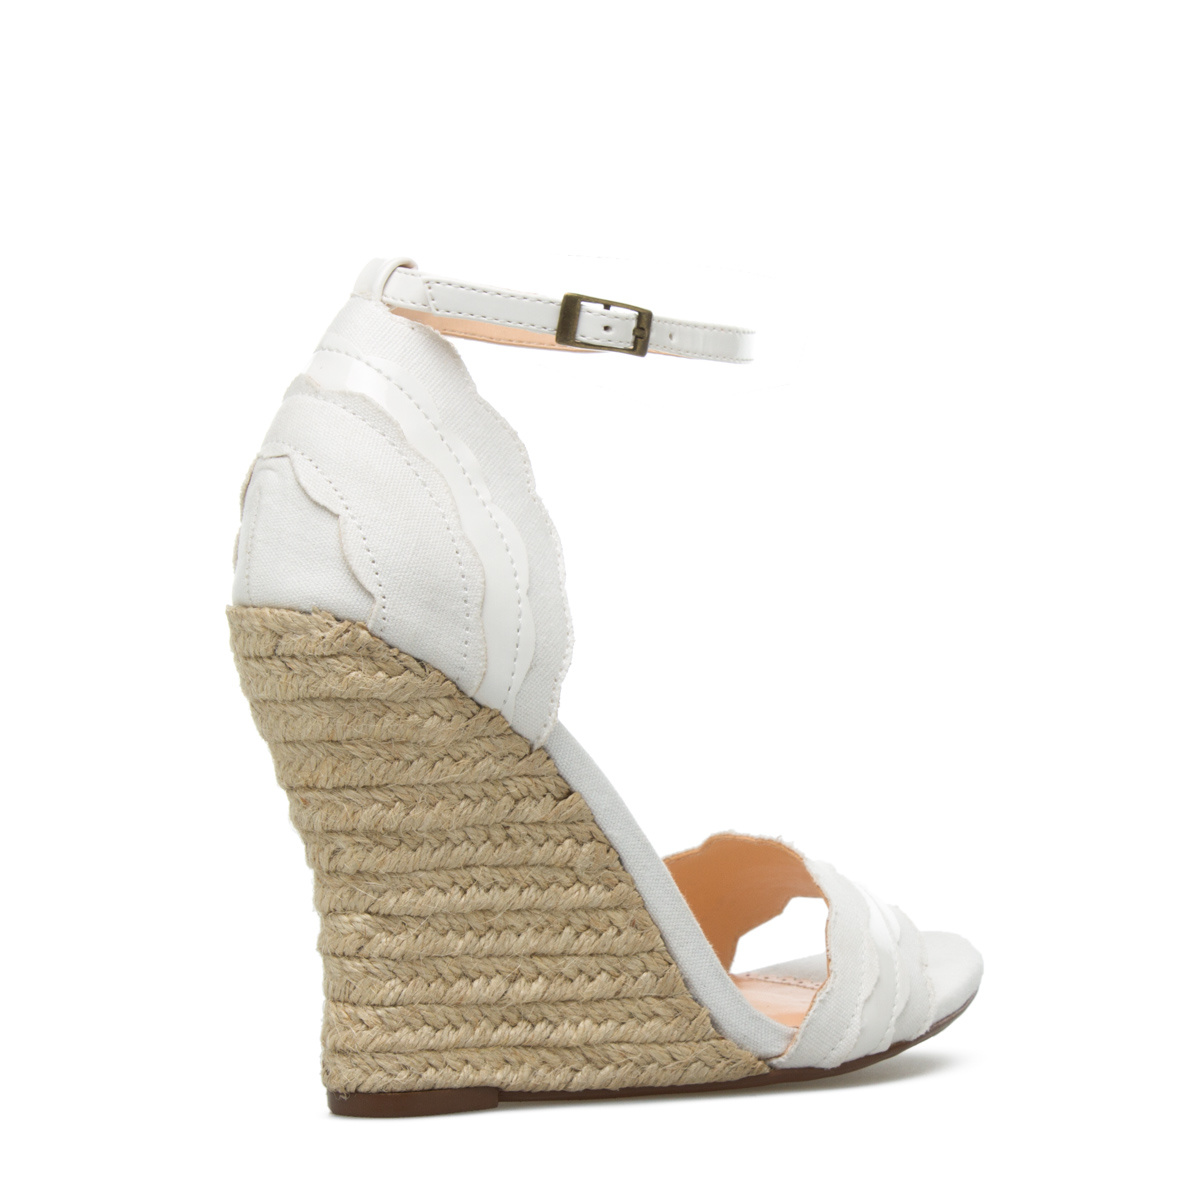 Where To Buy Wedge Heels